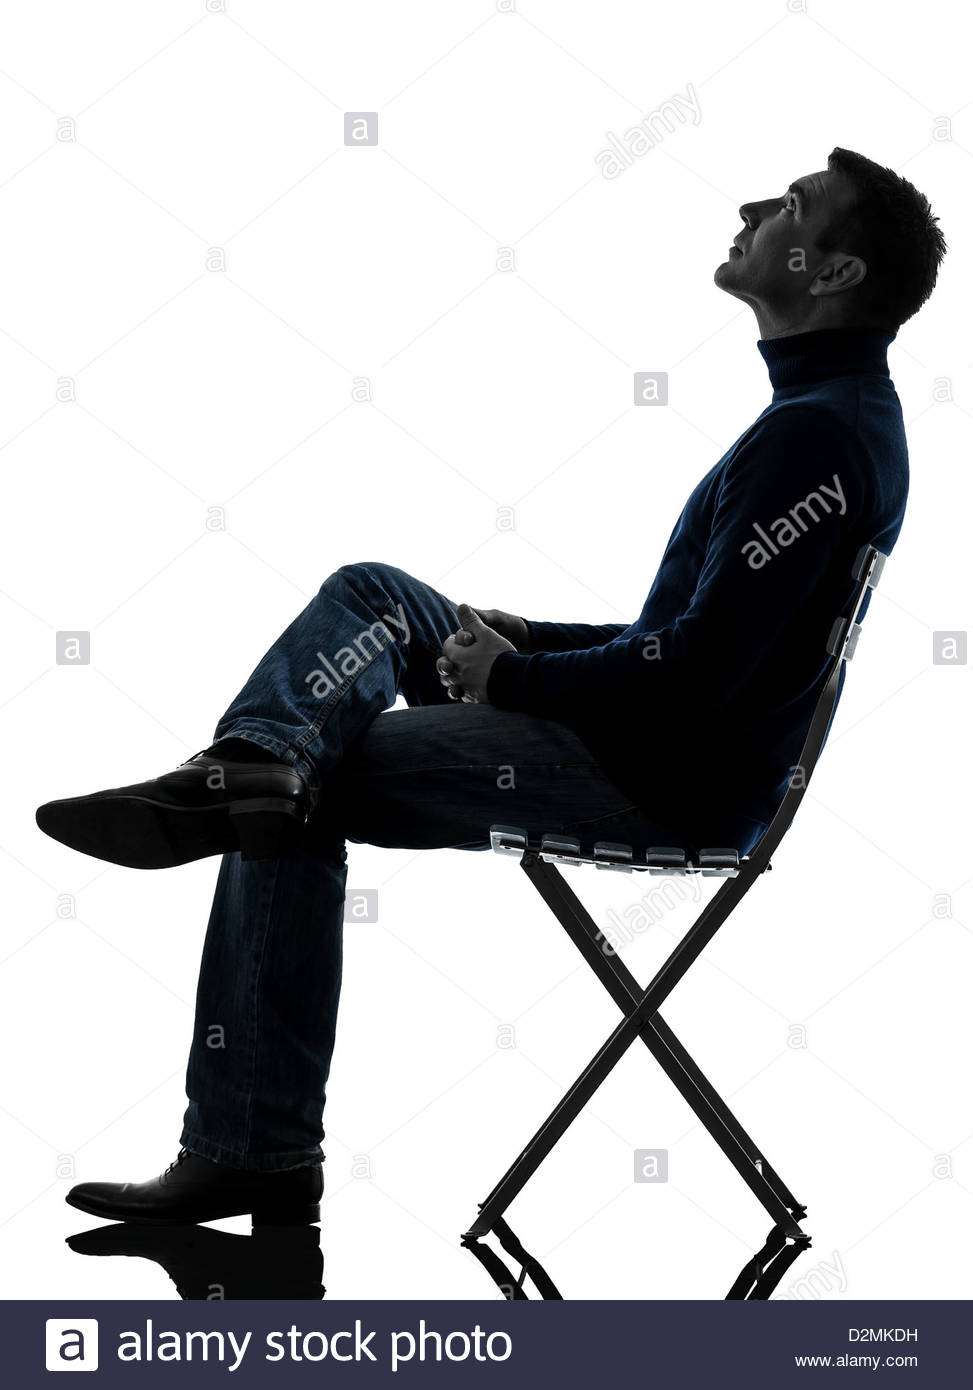 973x1390 One Man Sitting Looking Up Full Length In Silhouette Studio